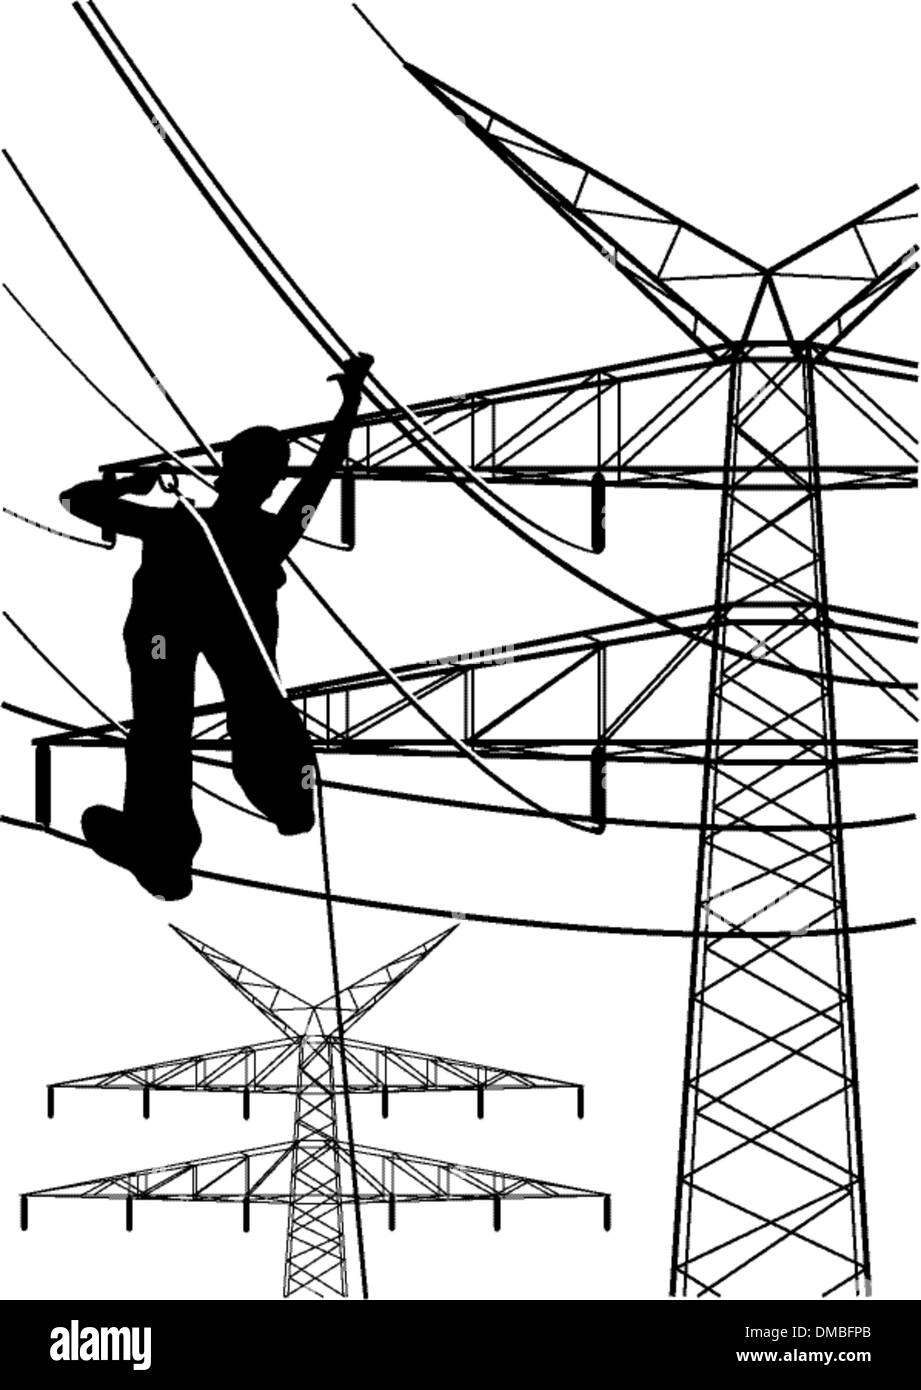 electrical tower constructions works - Stock Image